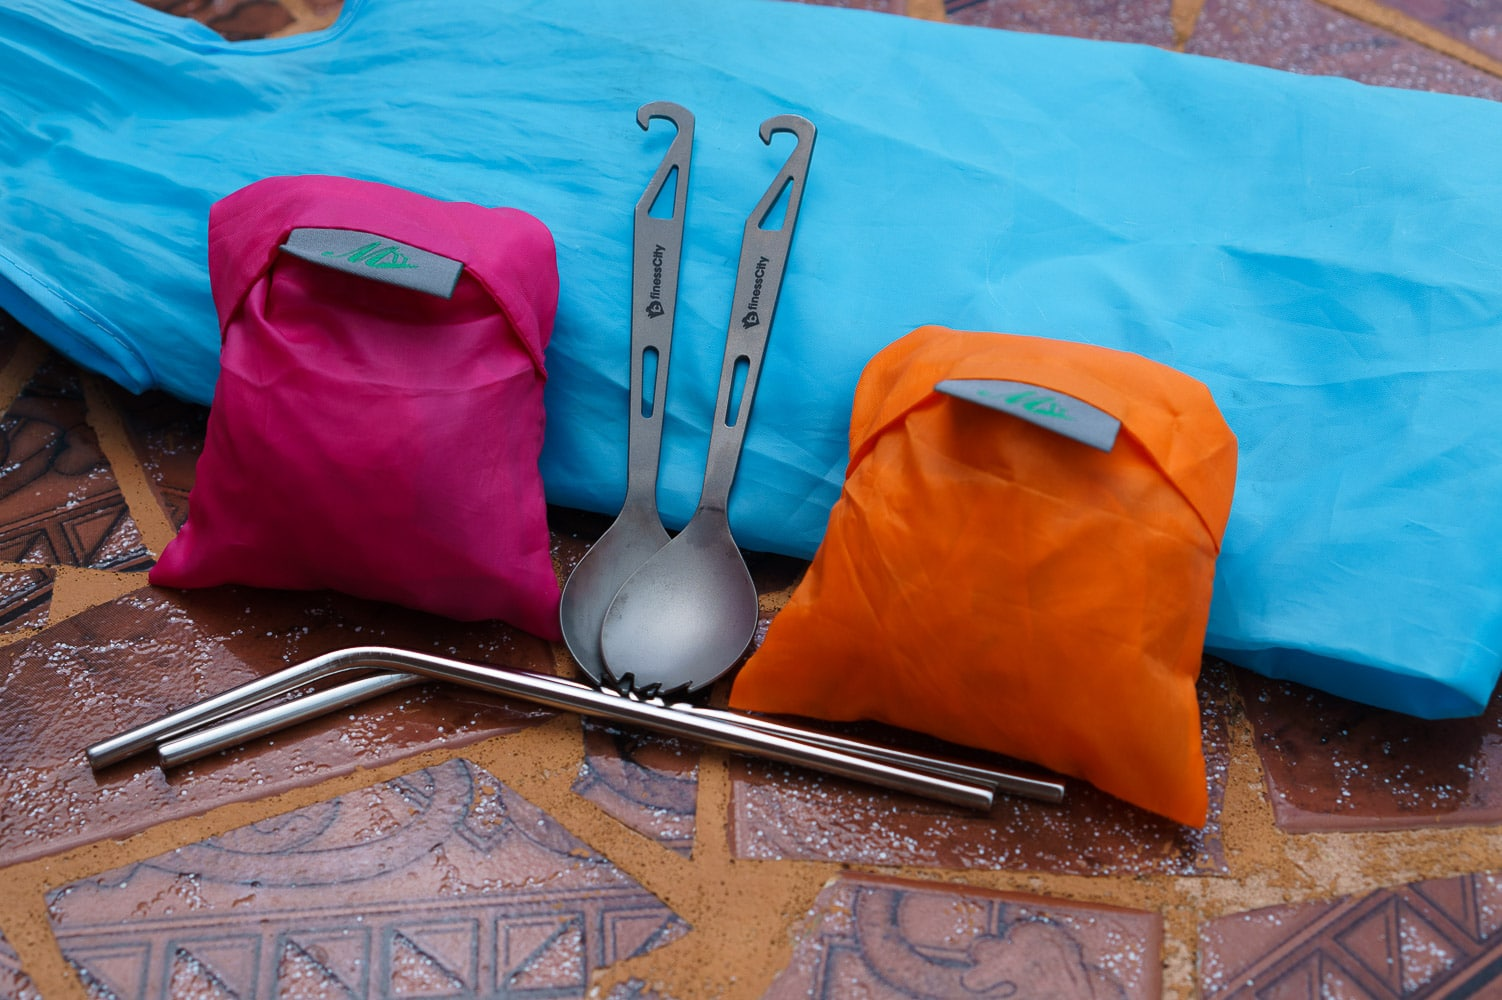 Packing reusable Cloth bags, titanium sporks, and straws helped us to reduce our plastic usage while travelling